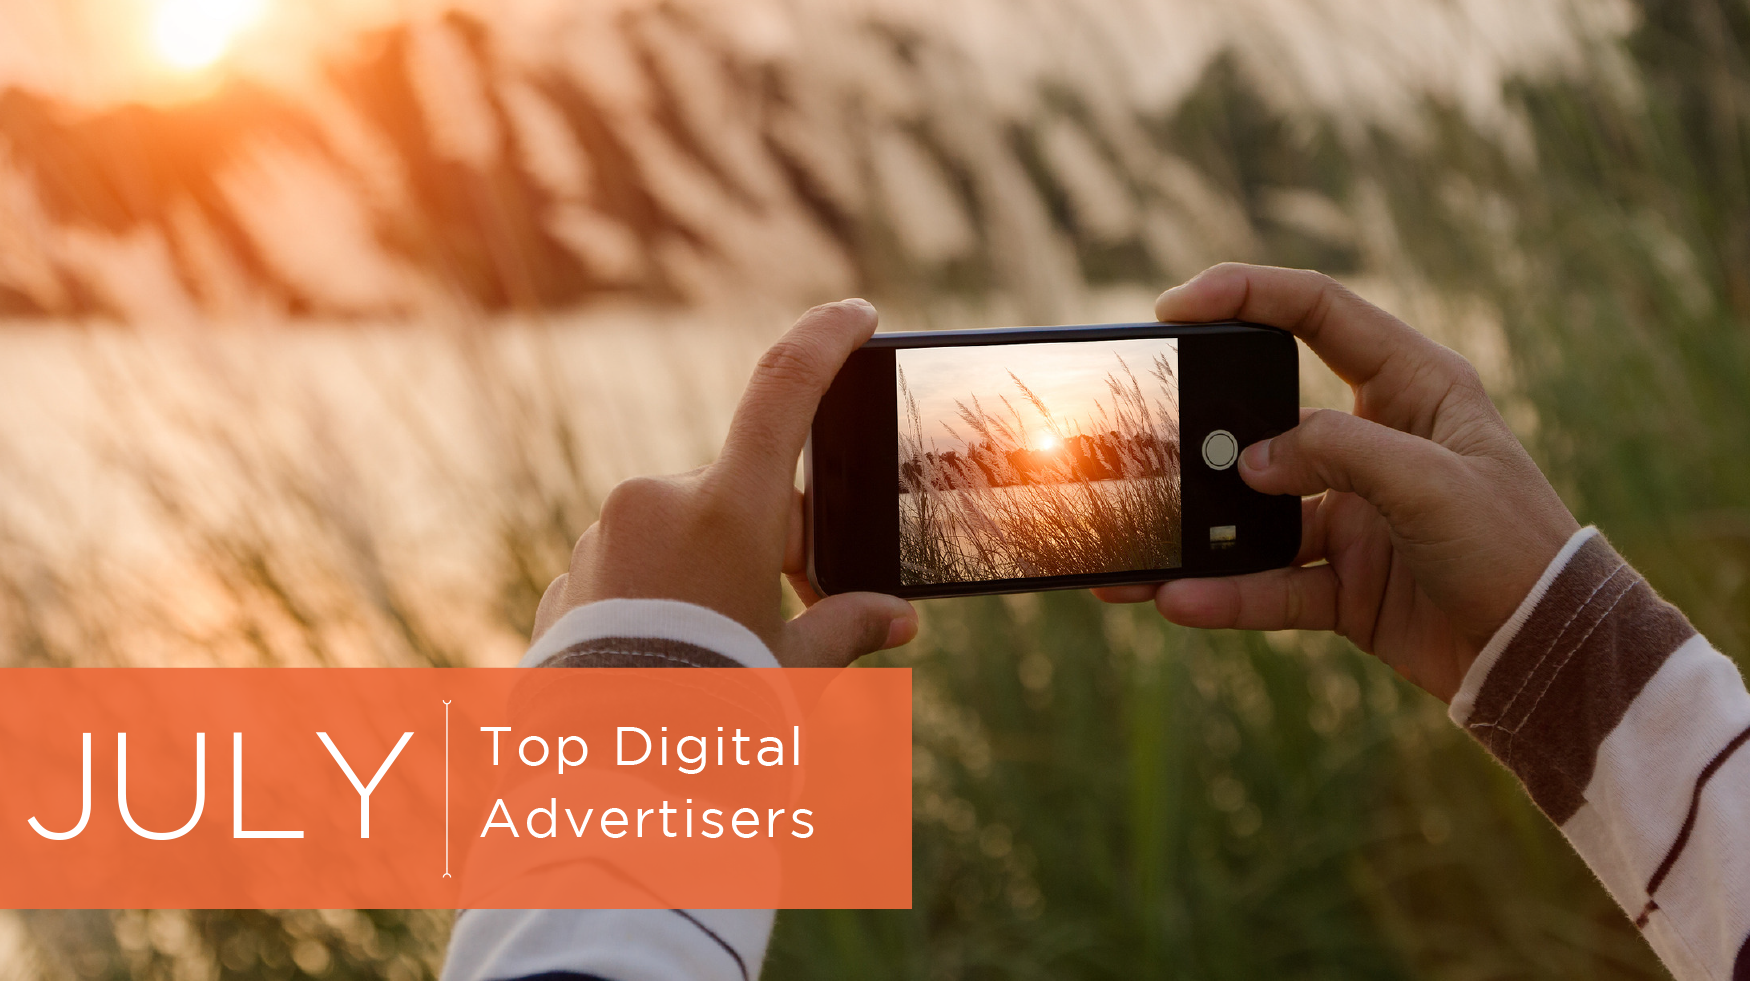 July's Top Digital Advertisers 2016 - Featured Image